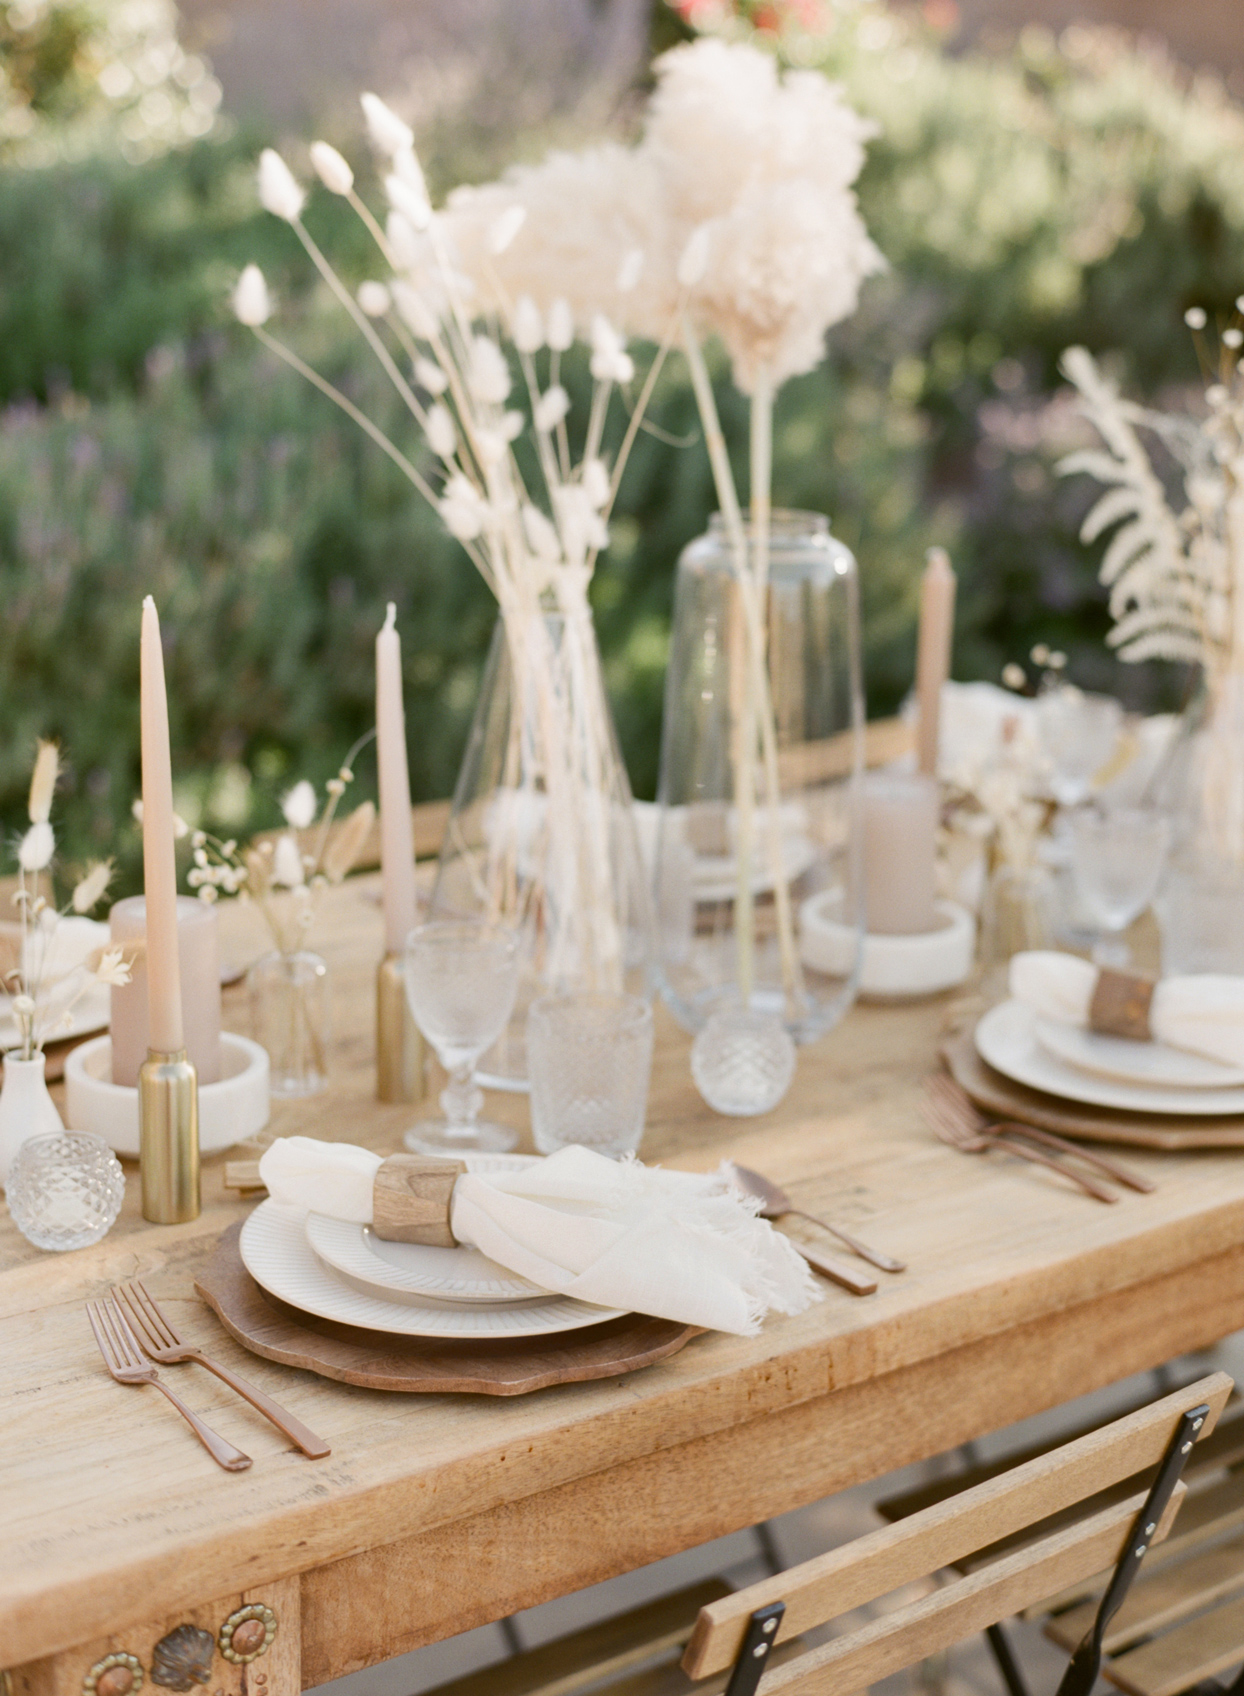 Table setting with candles and flowers